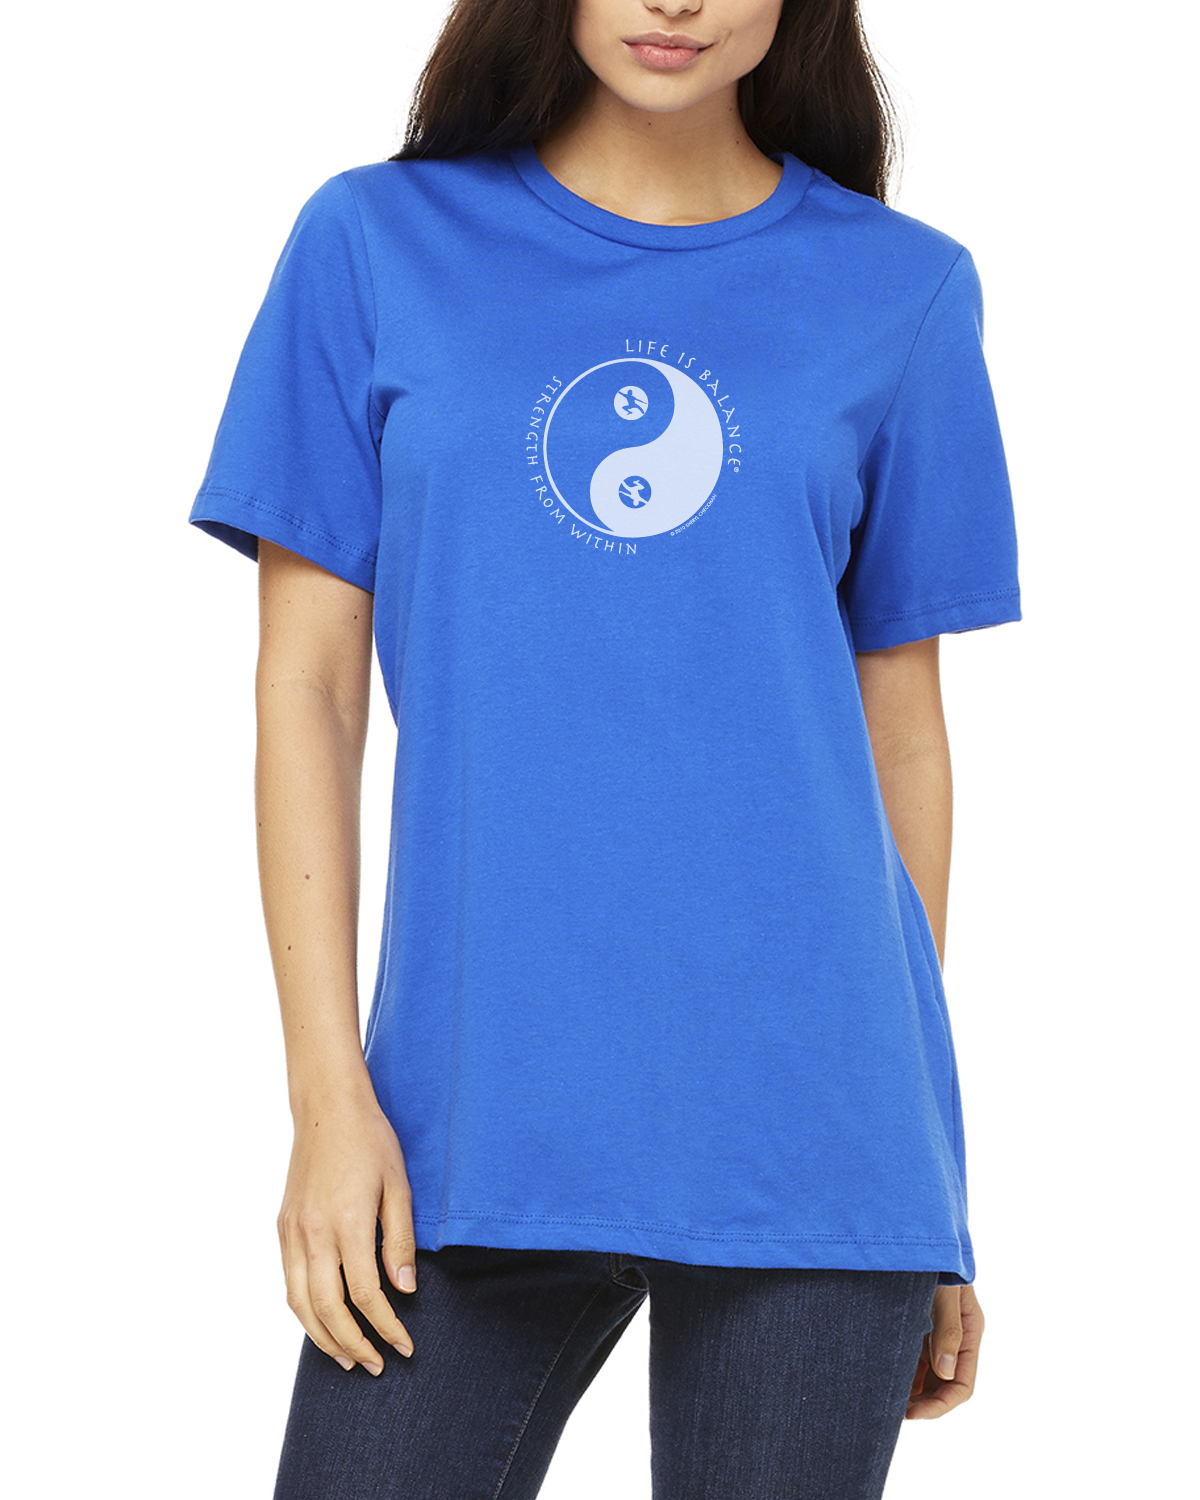 Women's short sleeve Tai Chi T-shirt (royal)